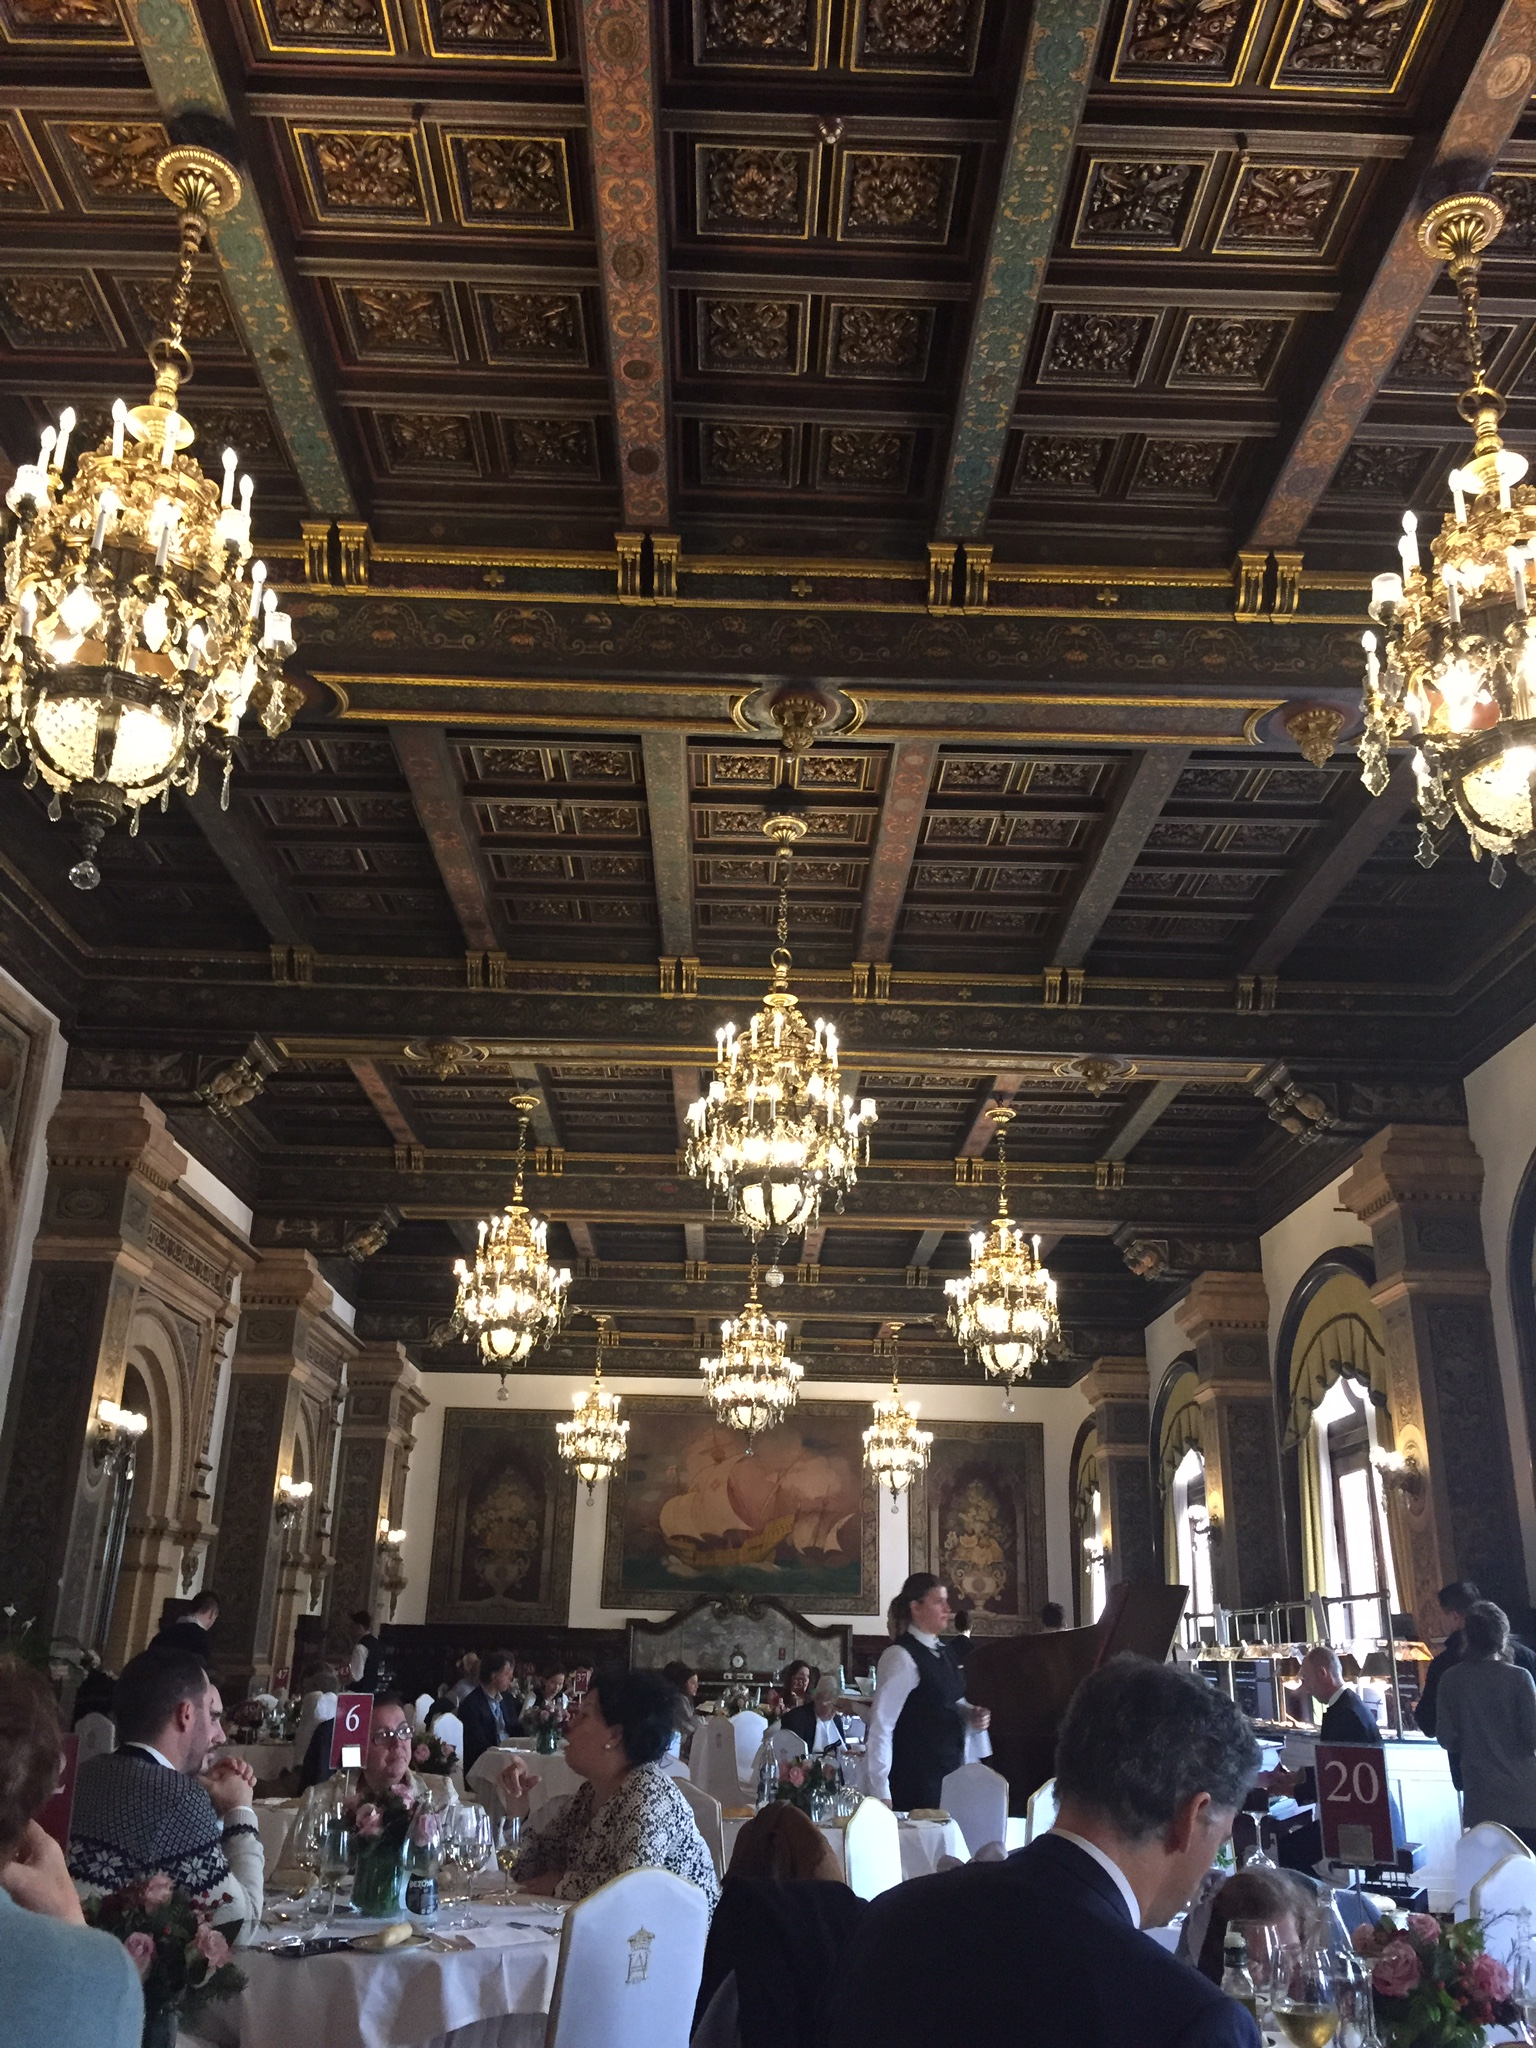 The dining room of Hotel Alfonso XIII.